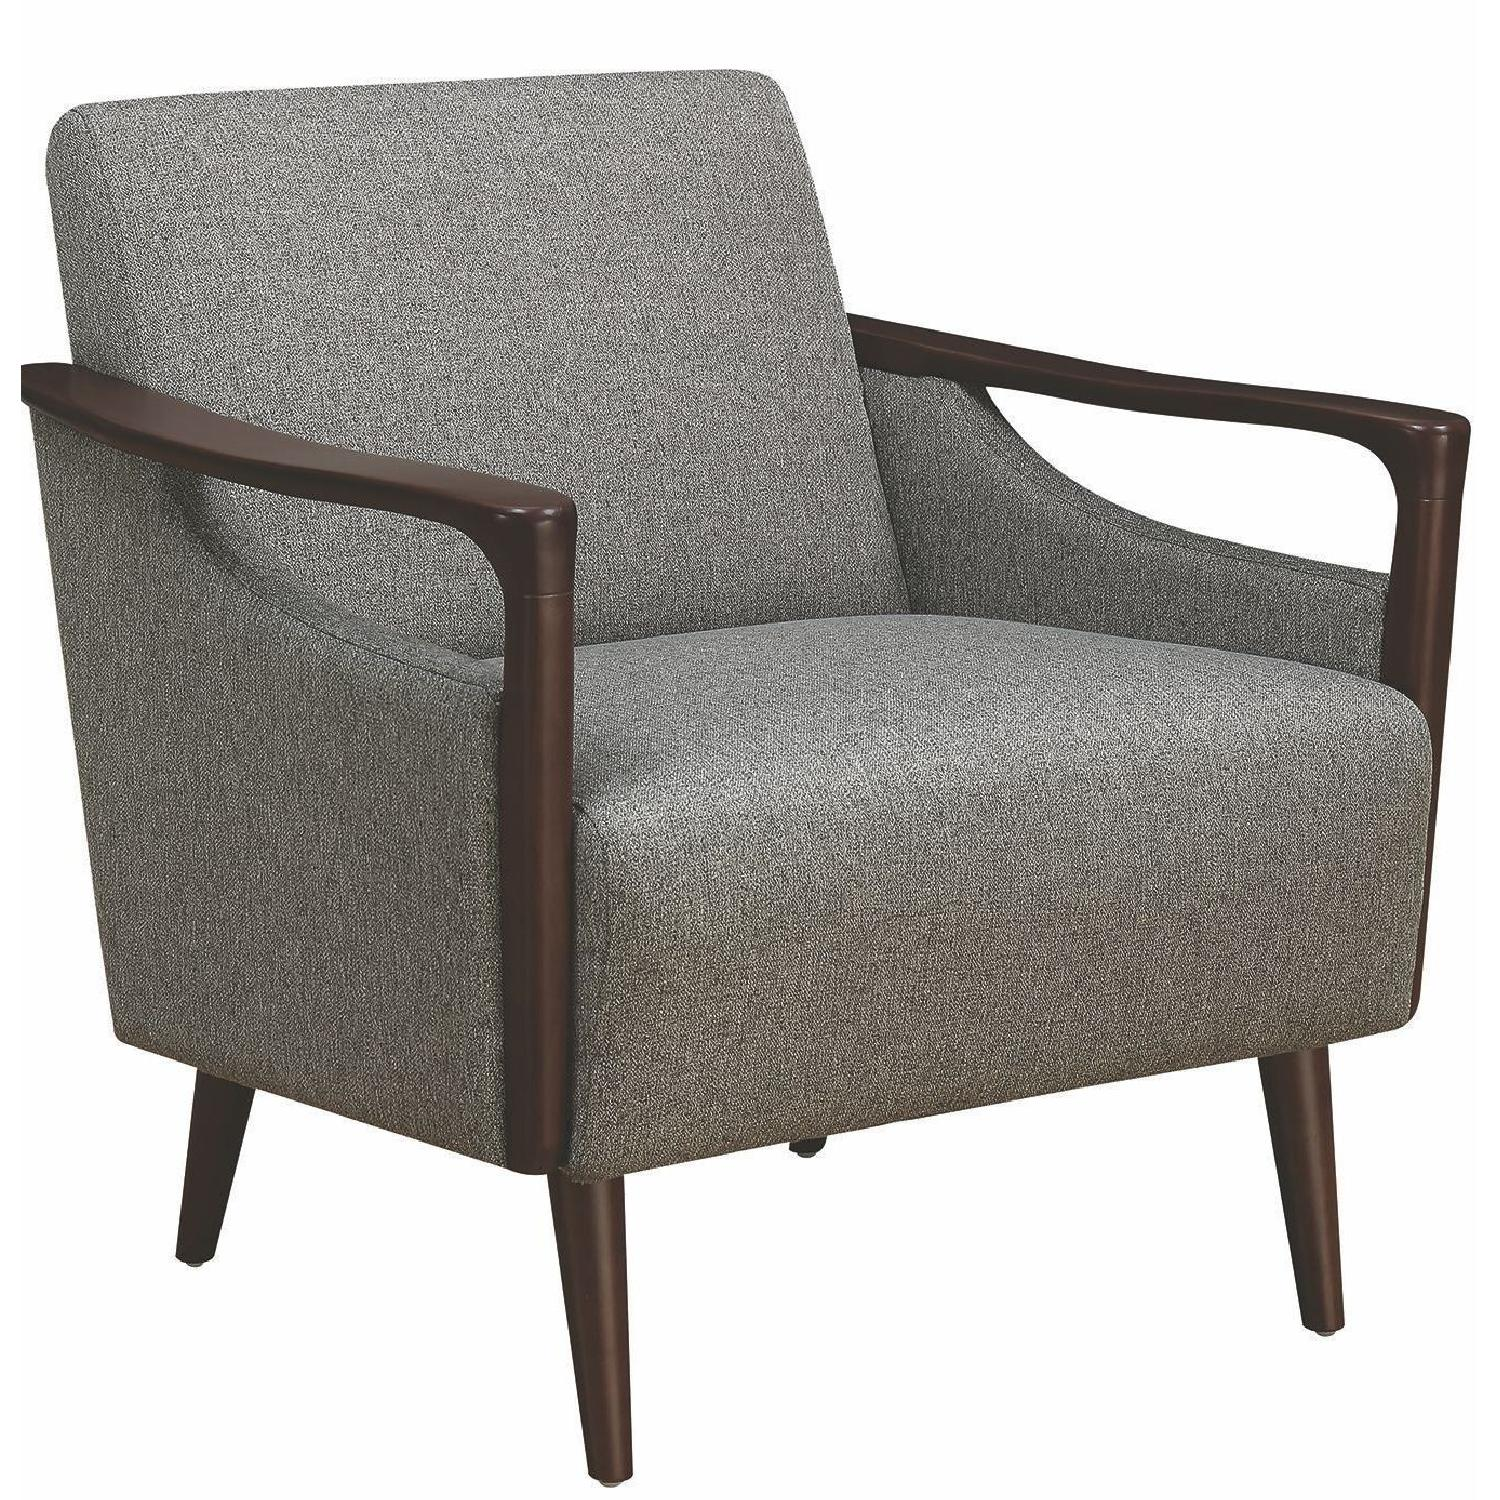 Mid-Century Modern Accent Chair In Grey Fabric W/ Wood